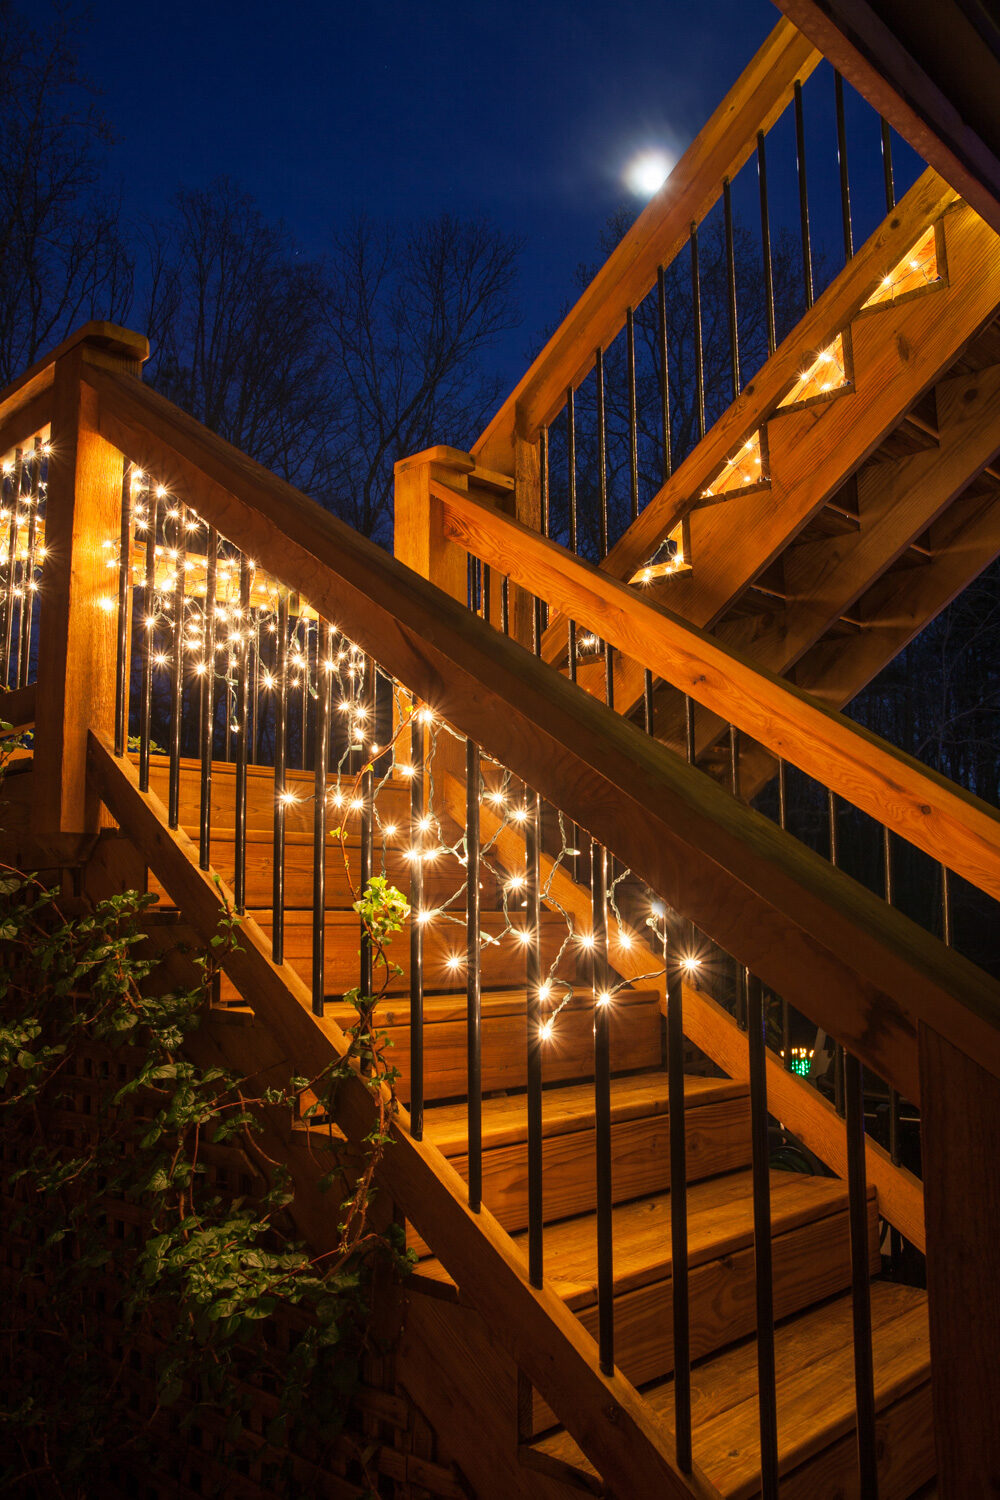 deck lighting idea for inspiration hang white lights along stairs